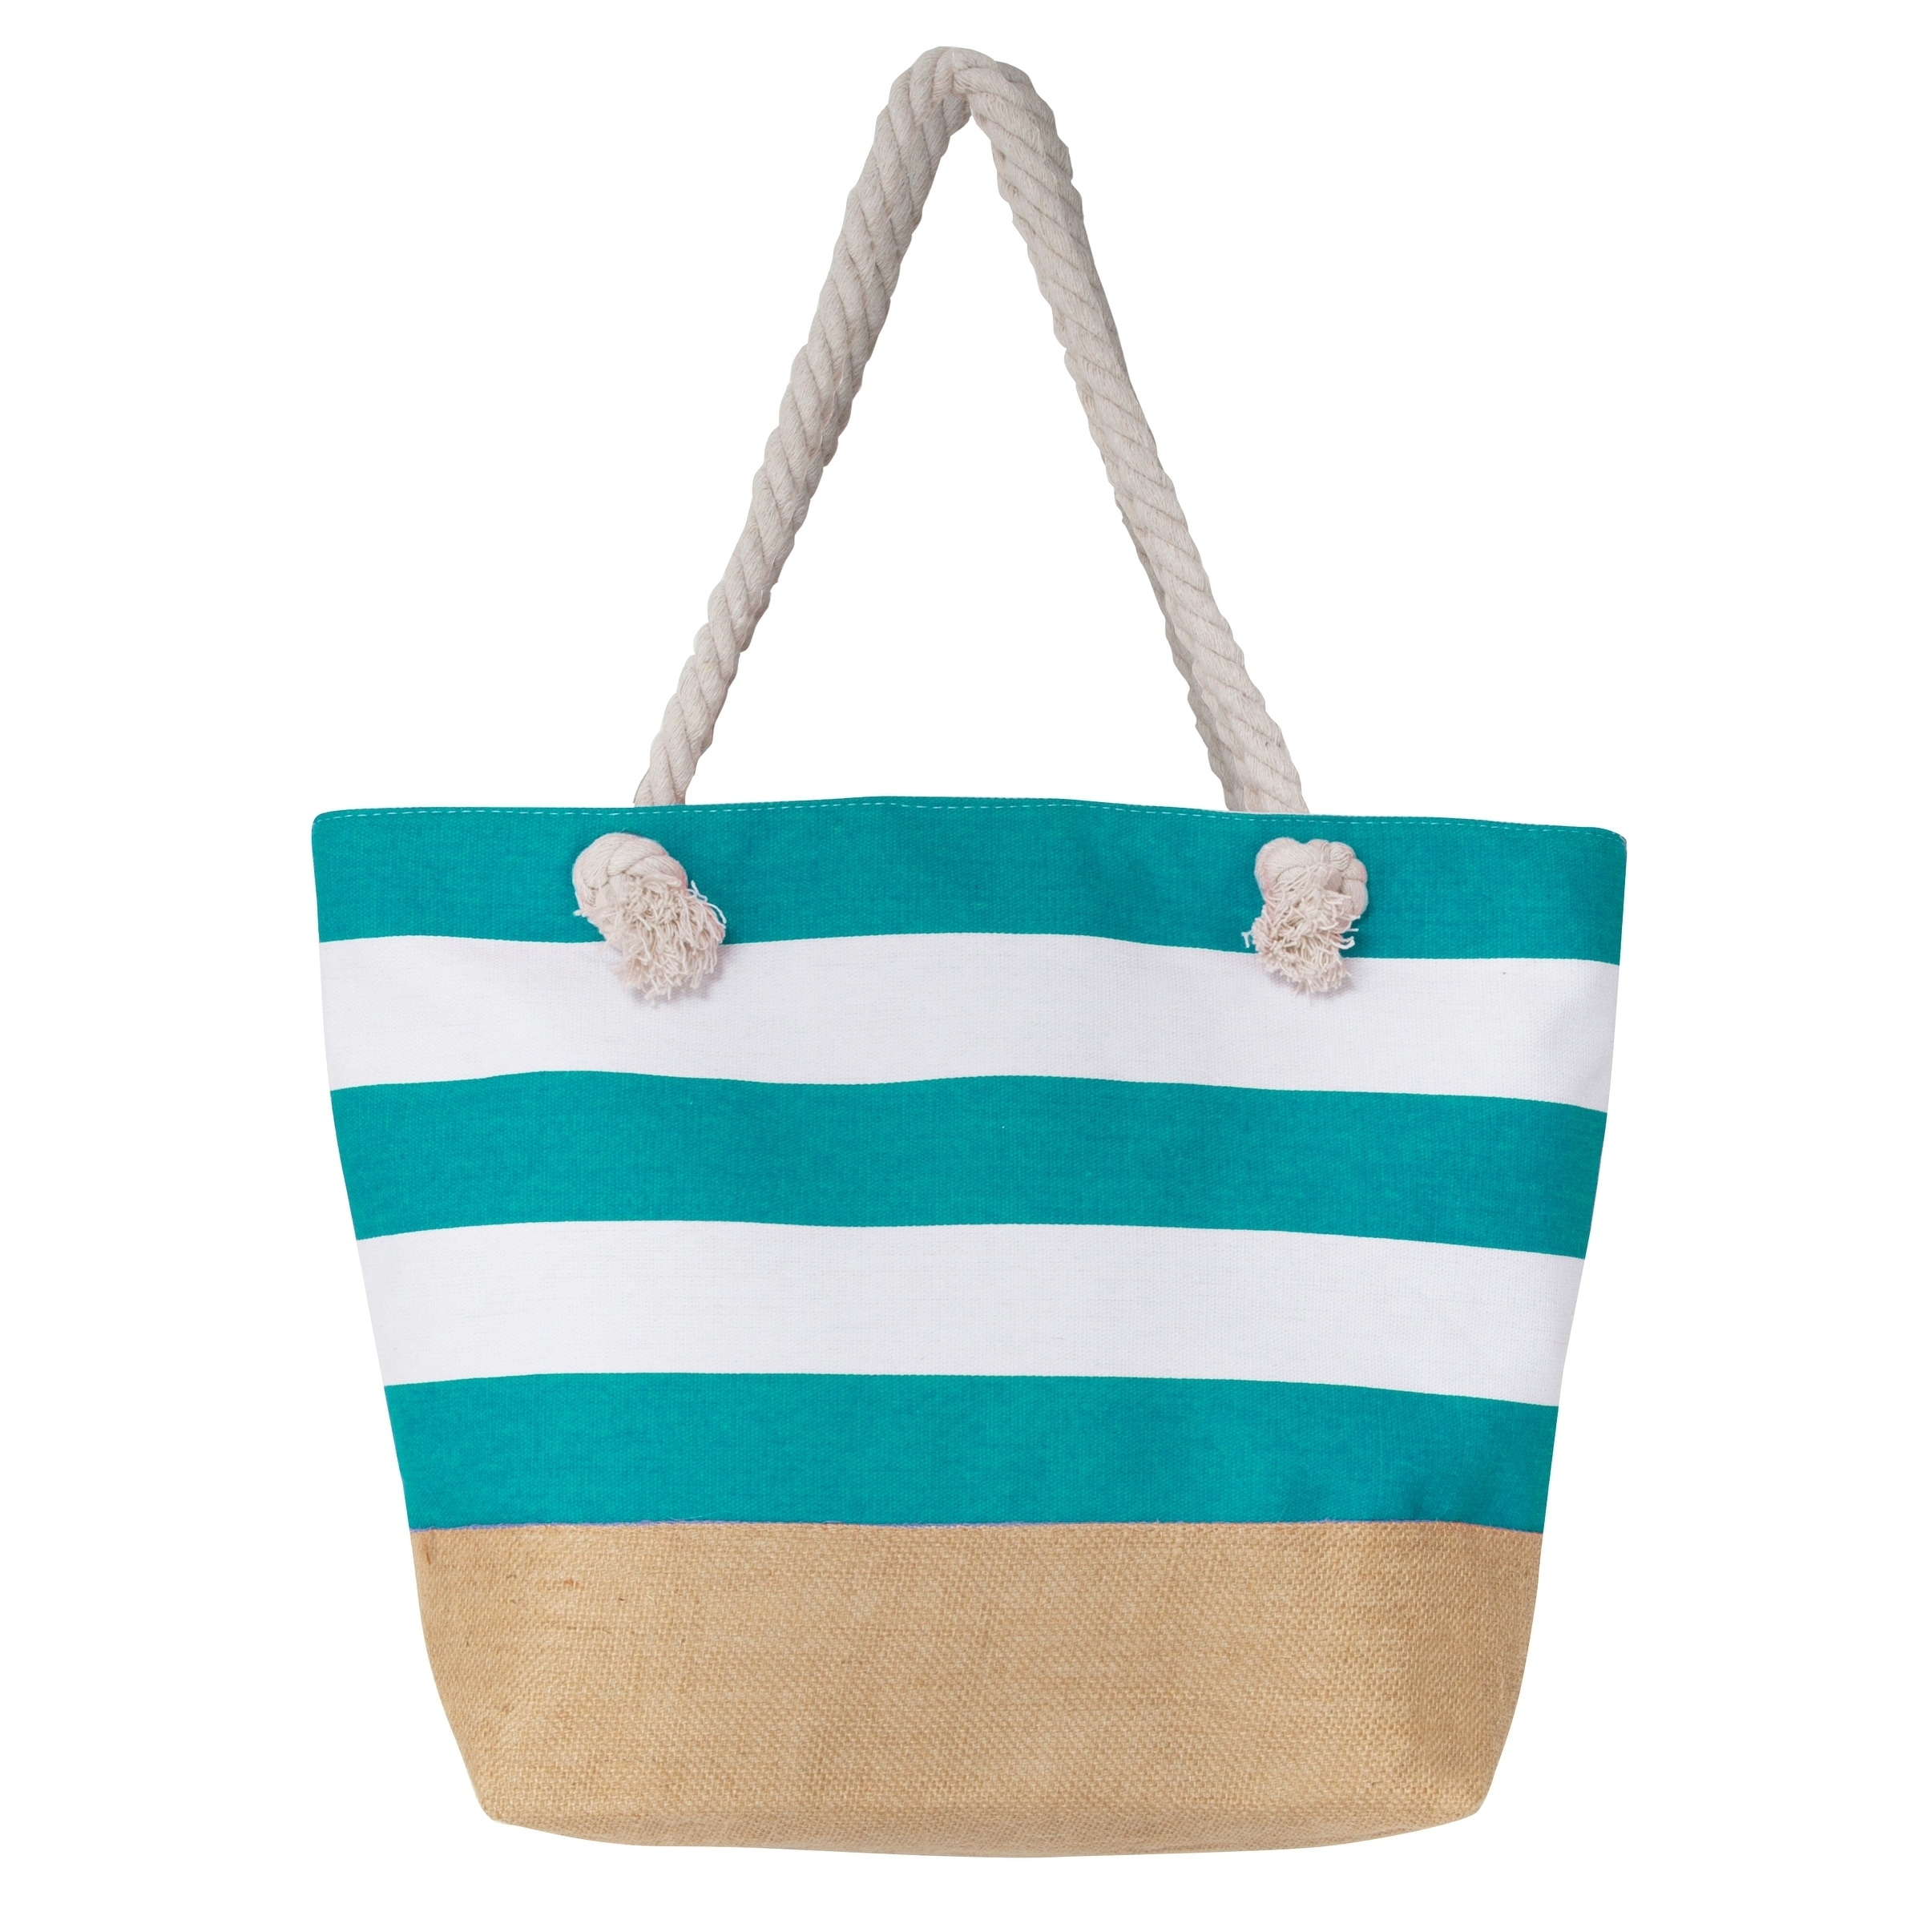 66ffe2a1f46 Shop Large Canvas Water Resistant Beach Bag